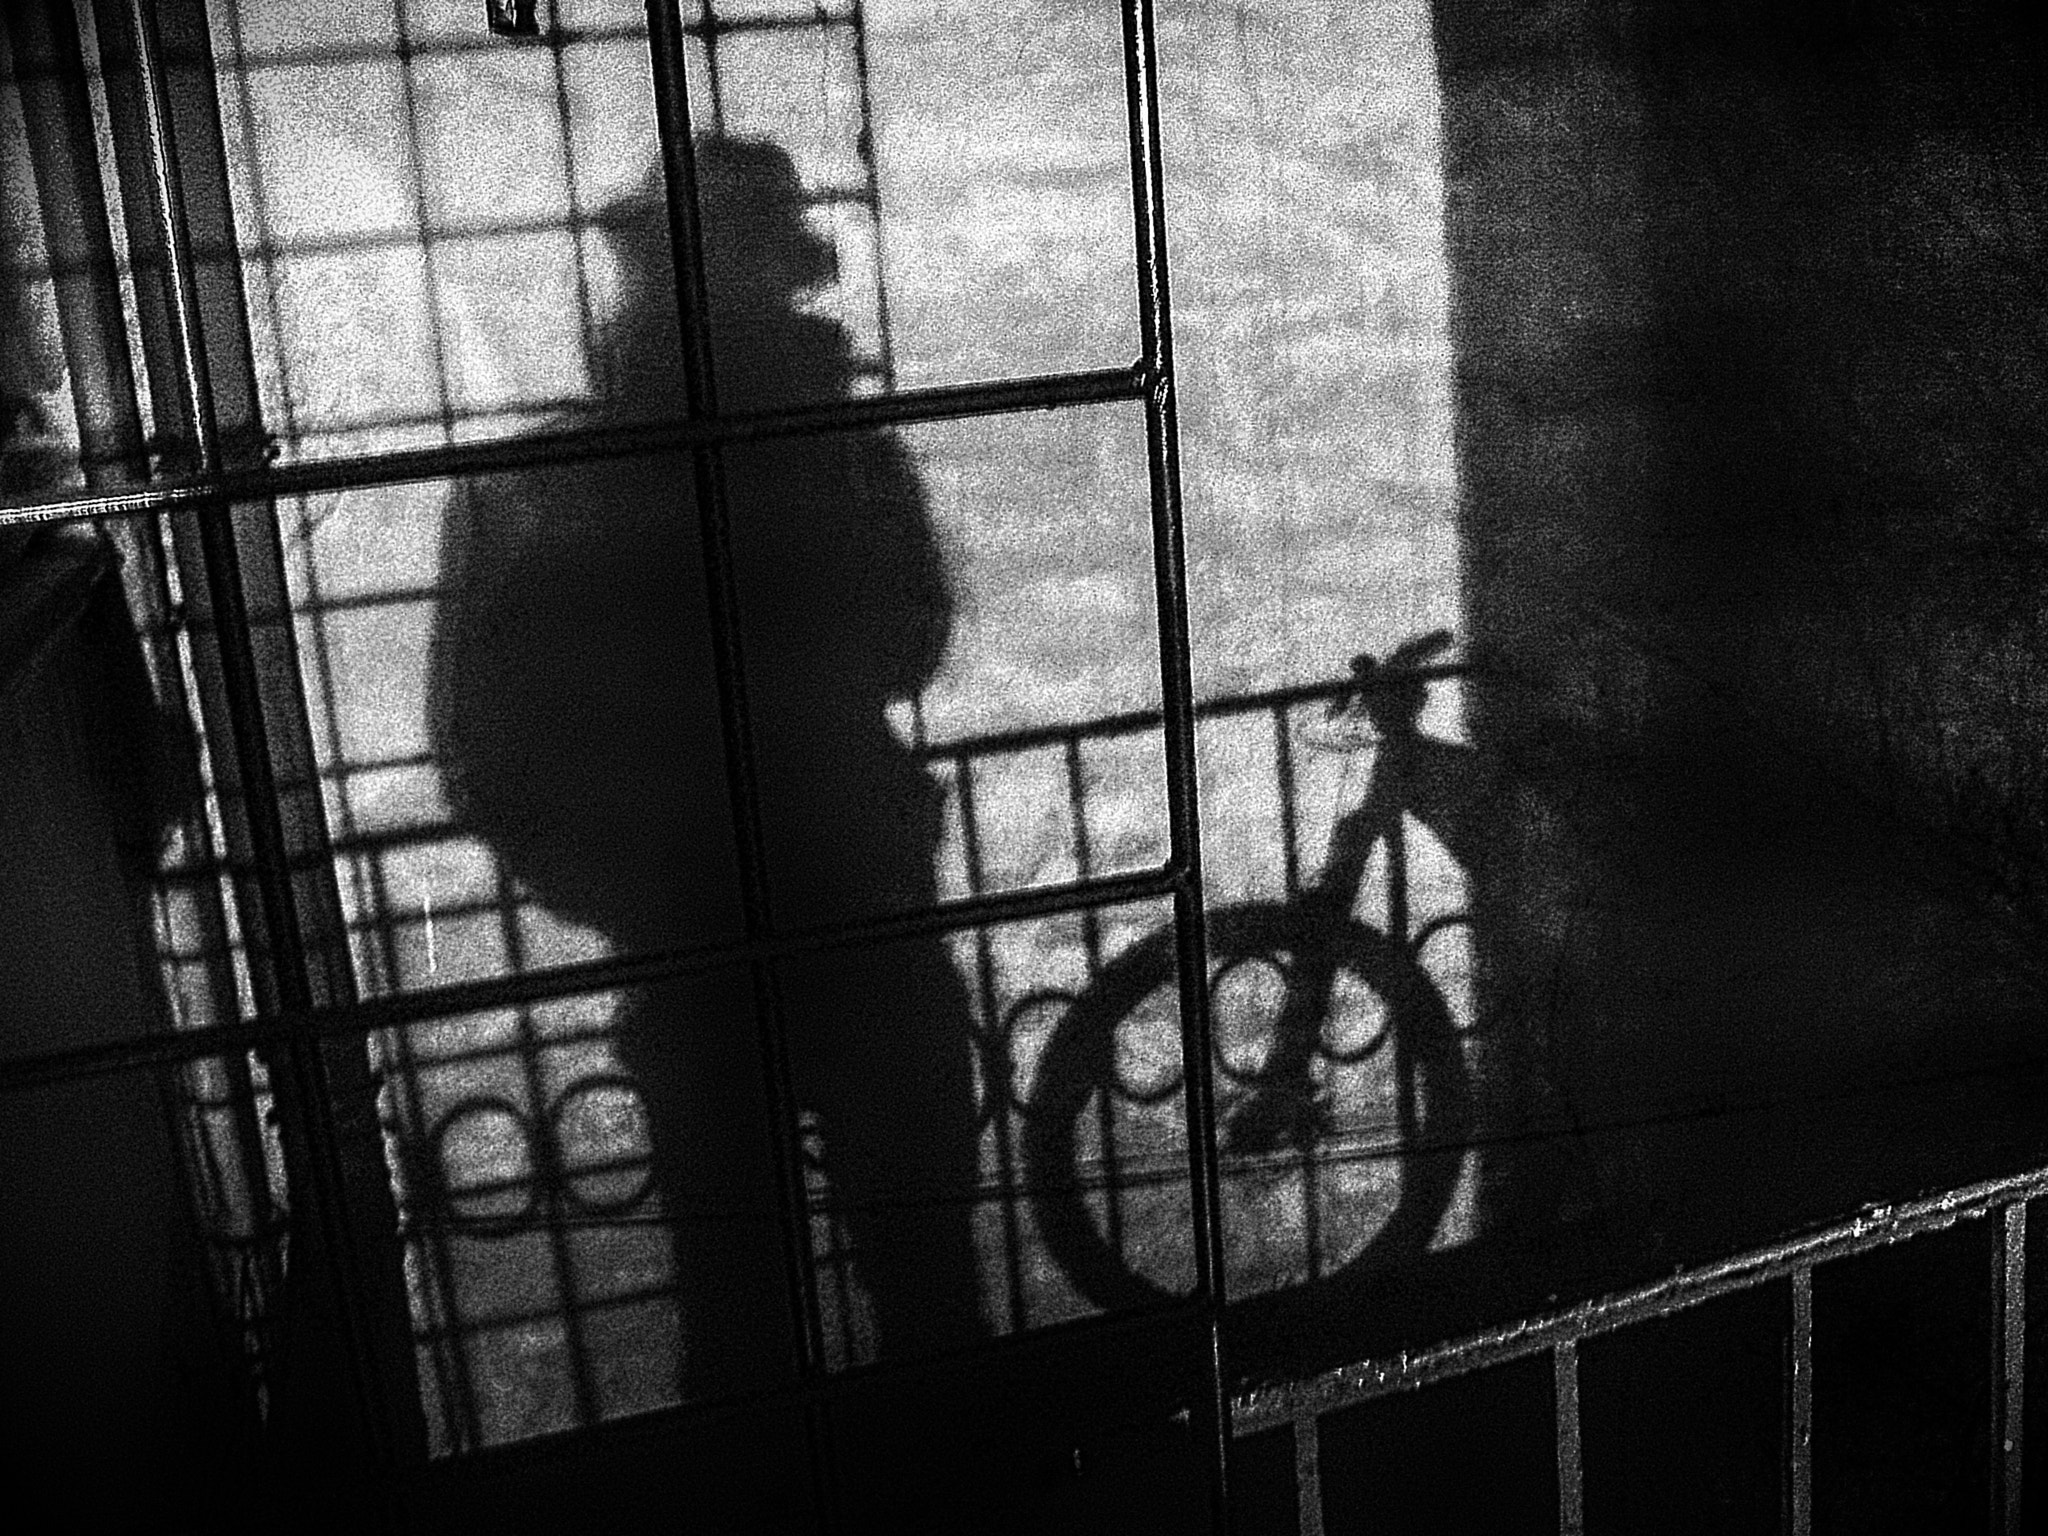 Photograph NIGHT SHADOWS S-P by Alessandro Galantucci on 500px